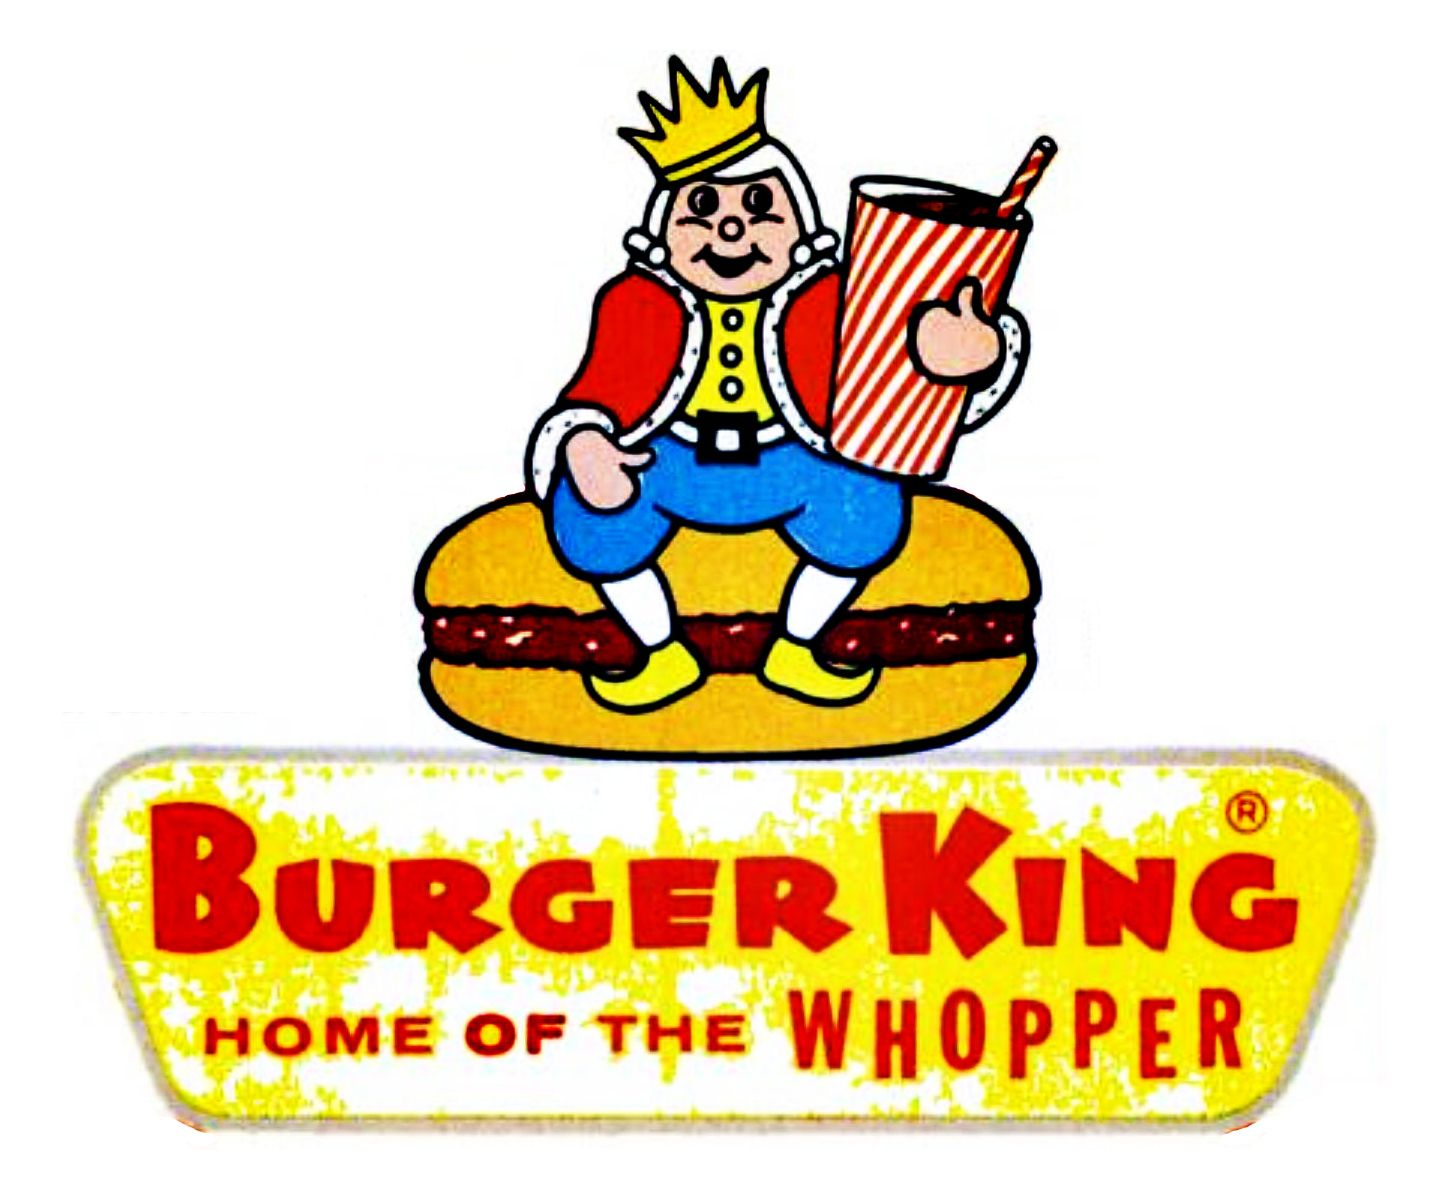 Burger King Logo - Burger King Logo, Burger King Symbol Meaning, History and Evolution